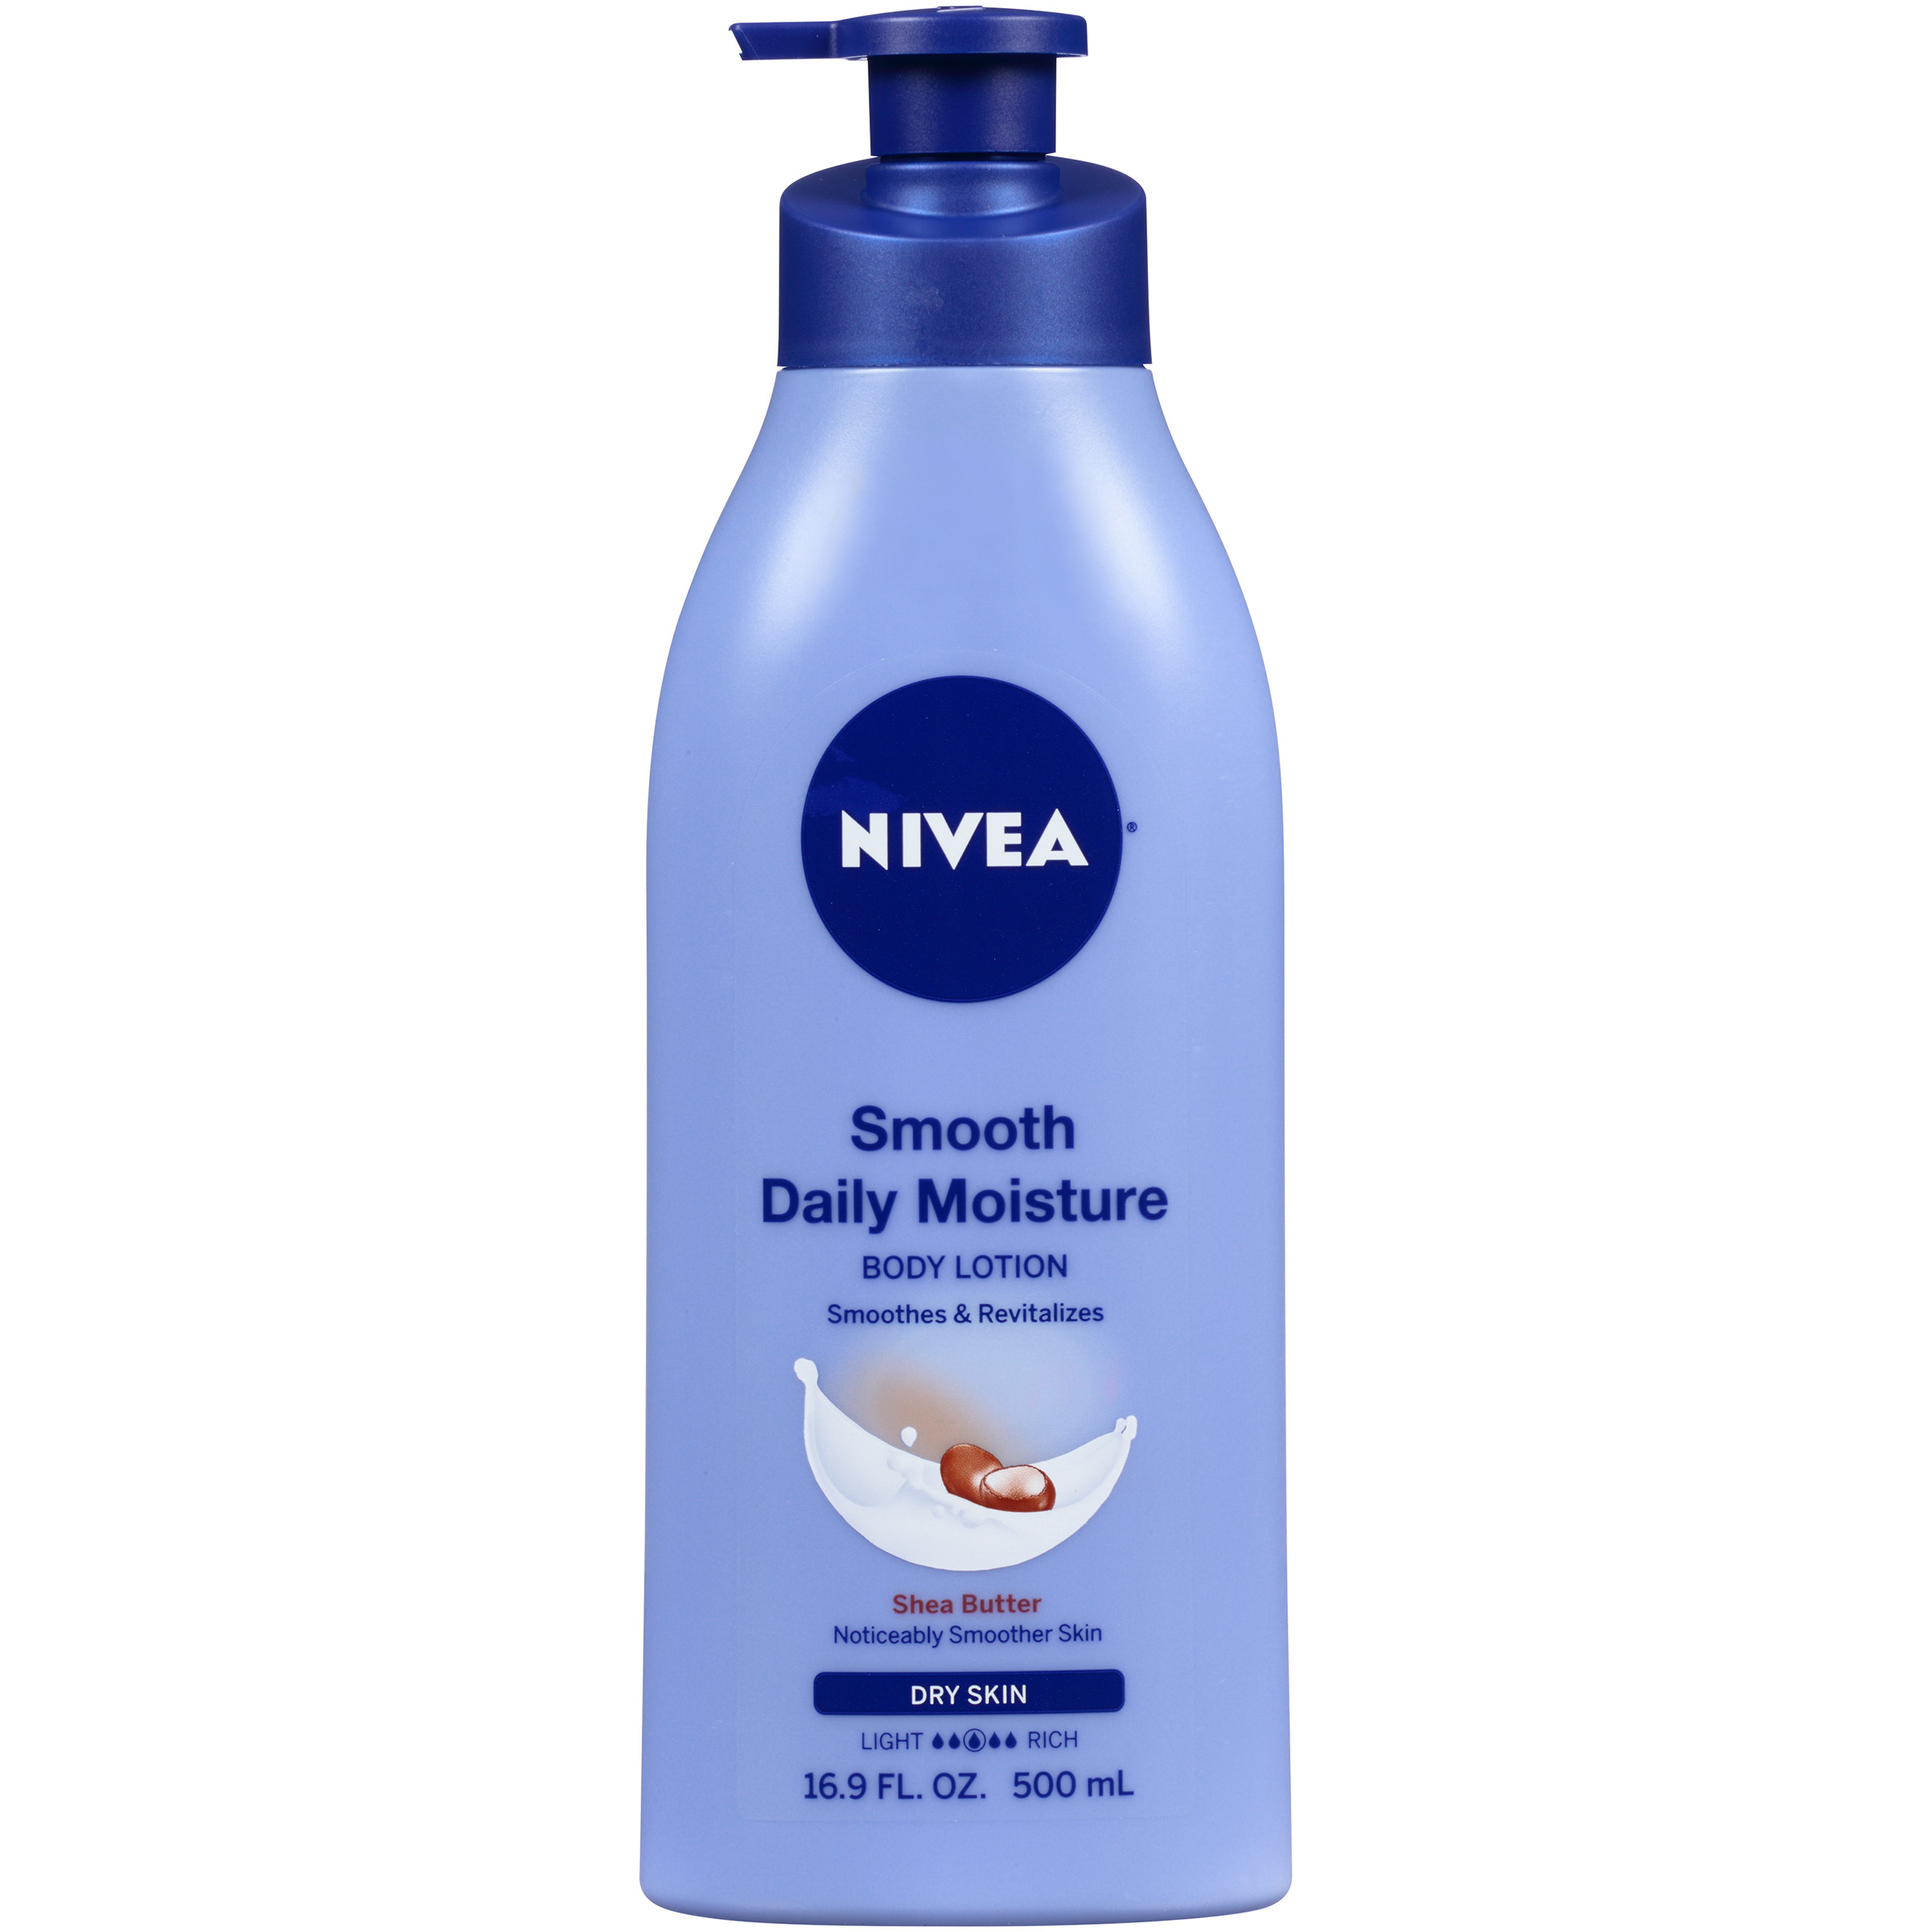 NIVEA Smooth Daily Moisture Body Lotion 16.9 fl. oz. - Walmart.com